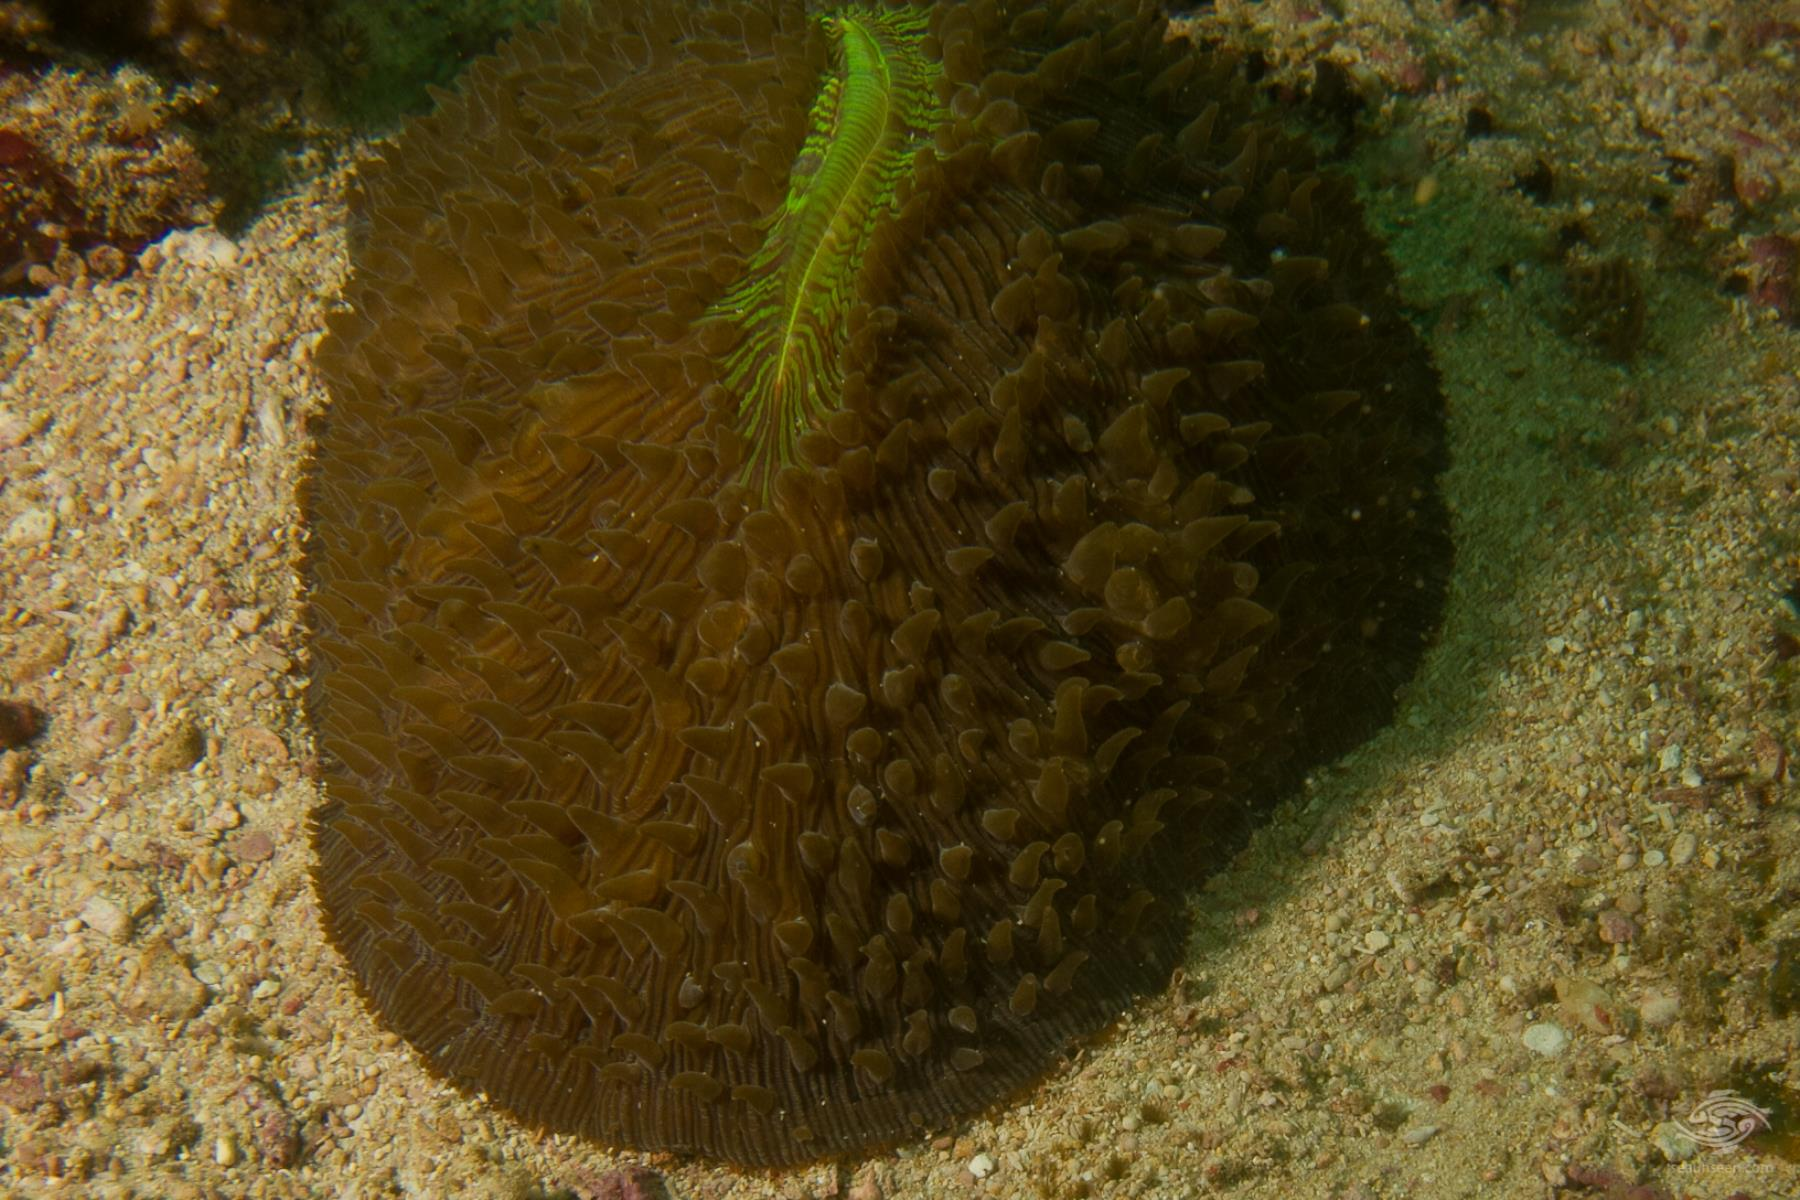 Slipper coral Herpolitha limax (11)